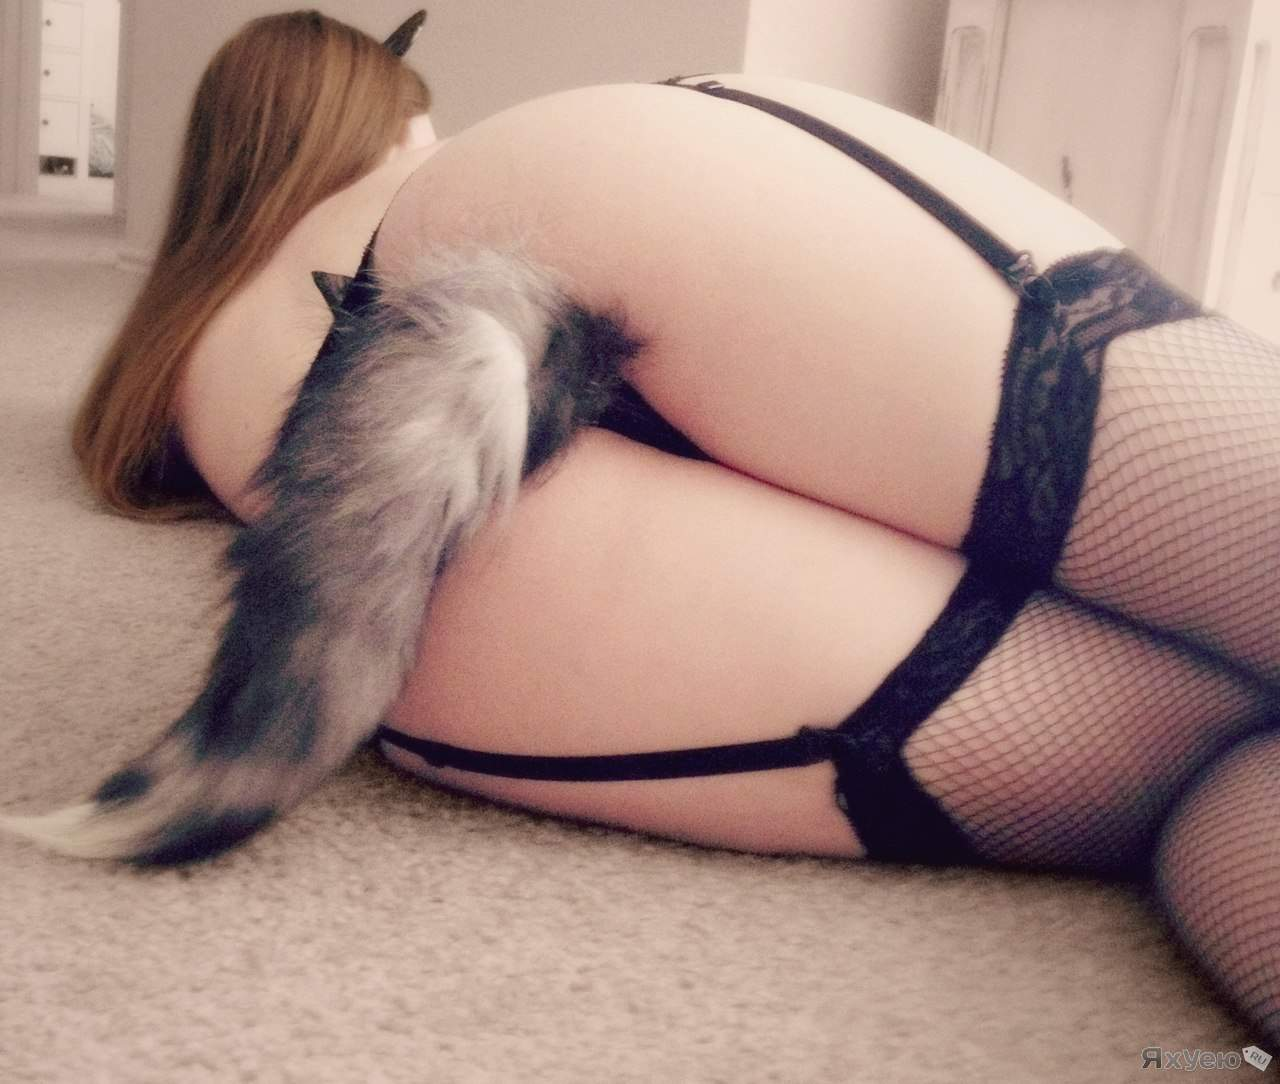 Sex hot with cat girl fucking gallery